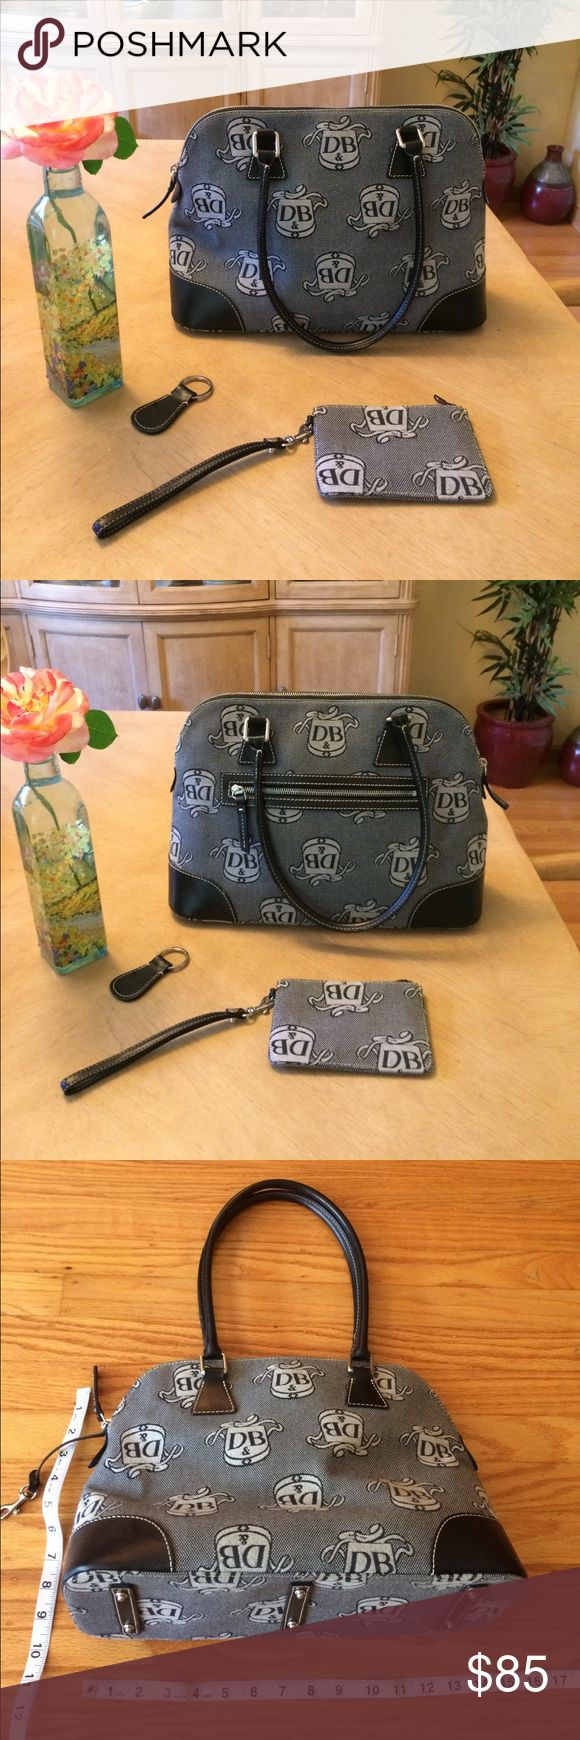 """👛 Dooney & Bourke; Lg. Doctor's Bag Purse Newish! Barely used! Dooney & Bourke, Black & Gray Doctor Bag Style Signature Fabric w/Leather Purse! Includes a Zippered Pouch with Key Ring (4""""x 6""""), & another Key Chain for your House/Car Keys. See inside label in photo for Authenticity. This Bag is Large! Measurements are approx. 14 1/2"""" across, Height is approx. 10"""" + another 9"""" to the top of the handle. Width is approx. 5"""" at the largest part, however, this bag is very stuffable! Can carry…"""